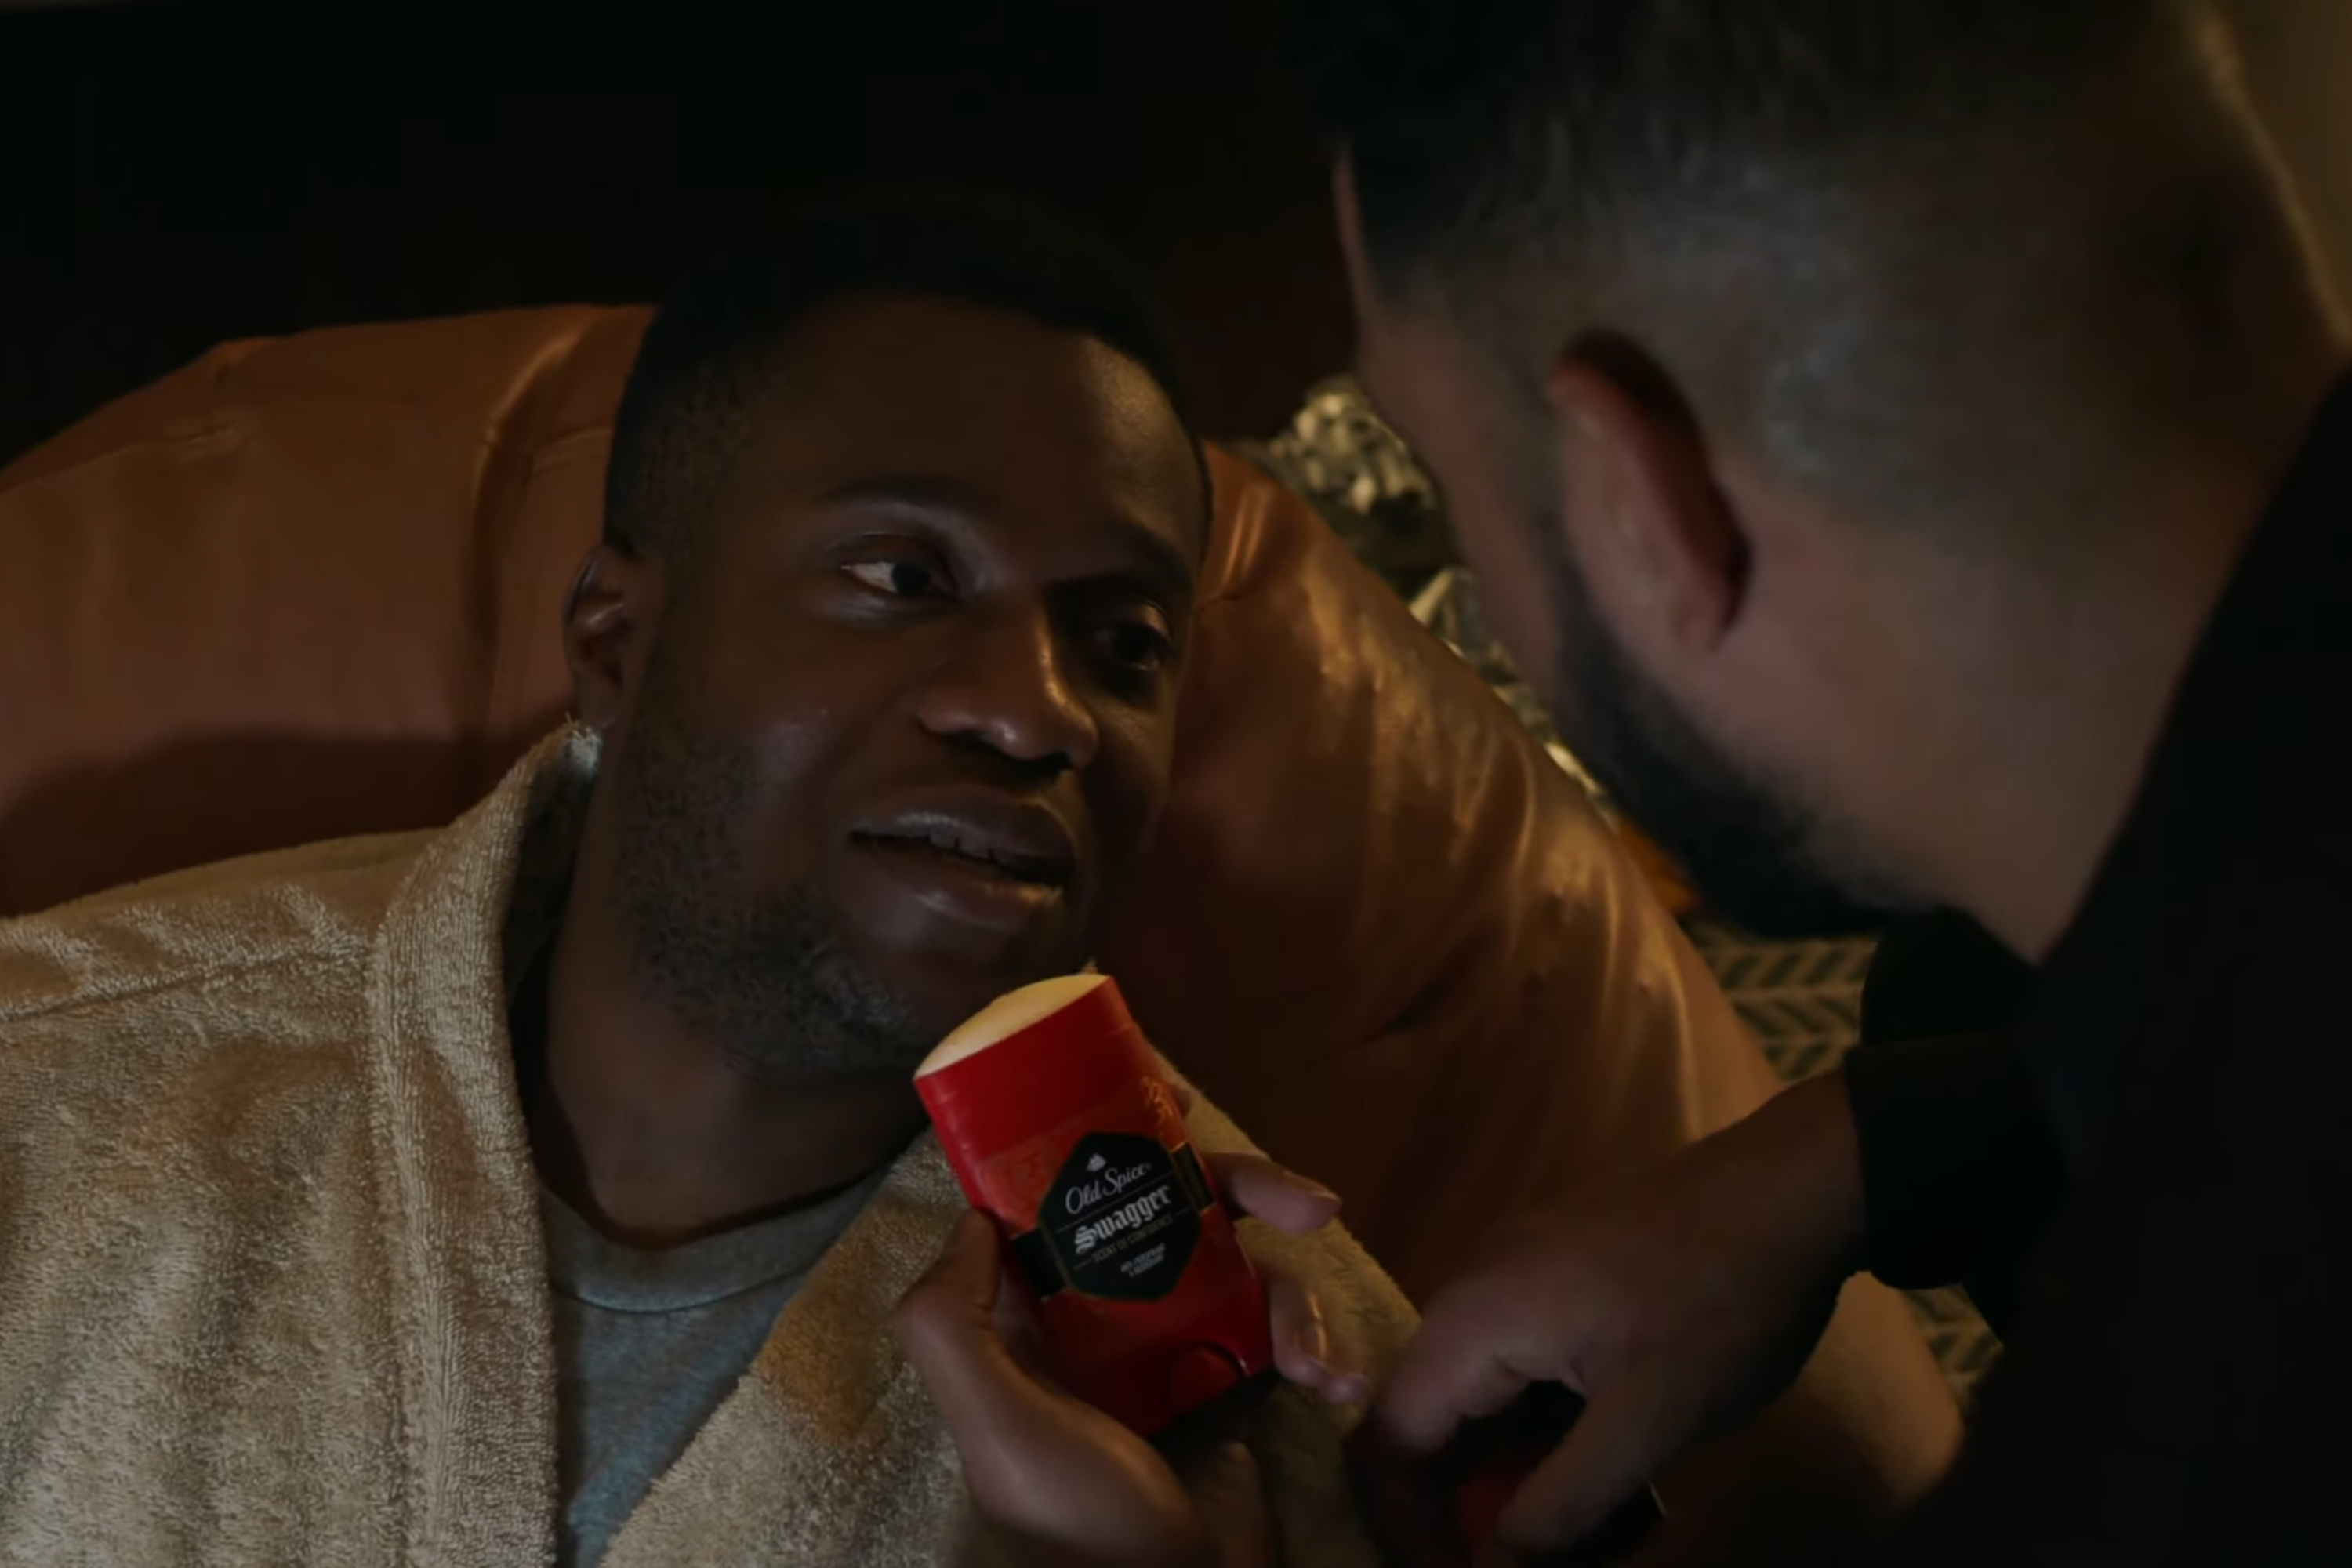 Old Spice: Never Let a Friend Lose his Swagger